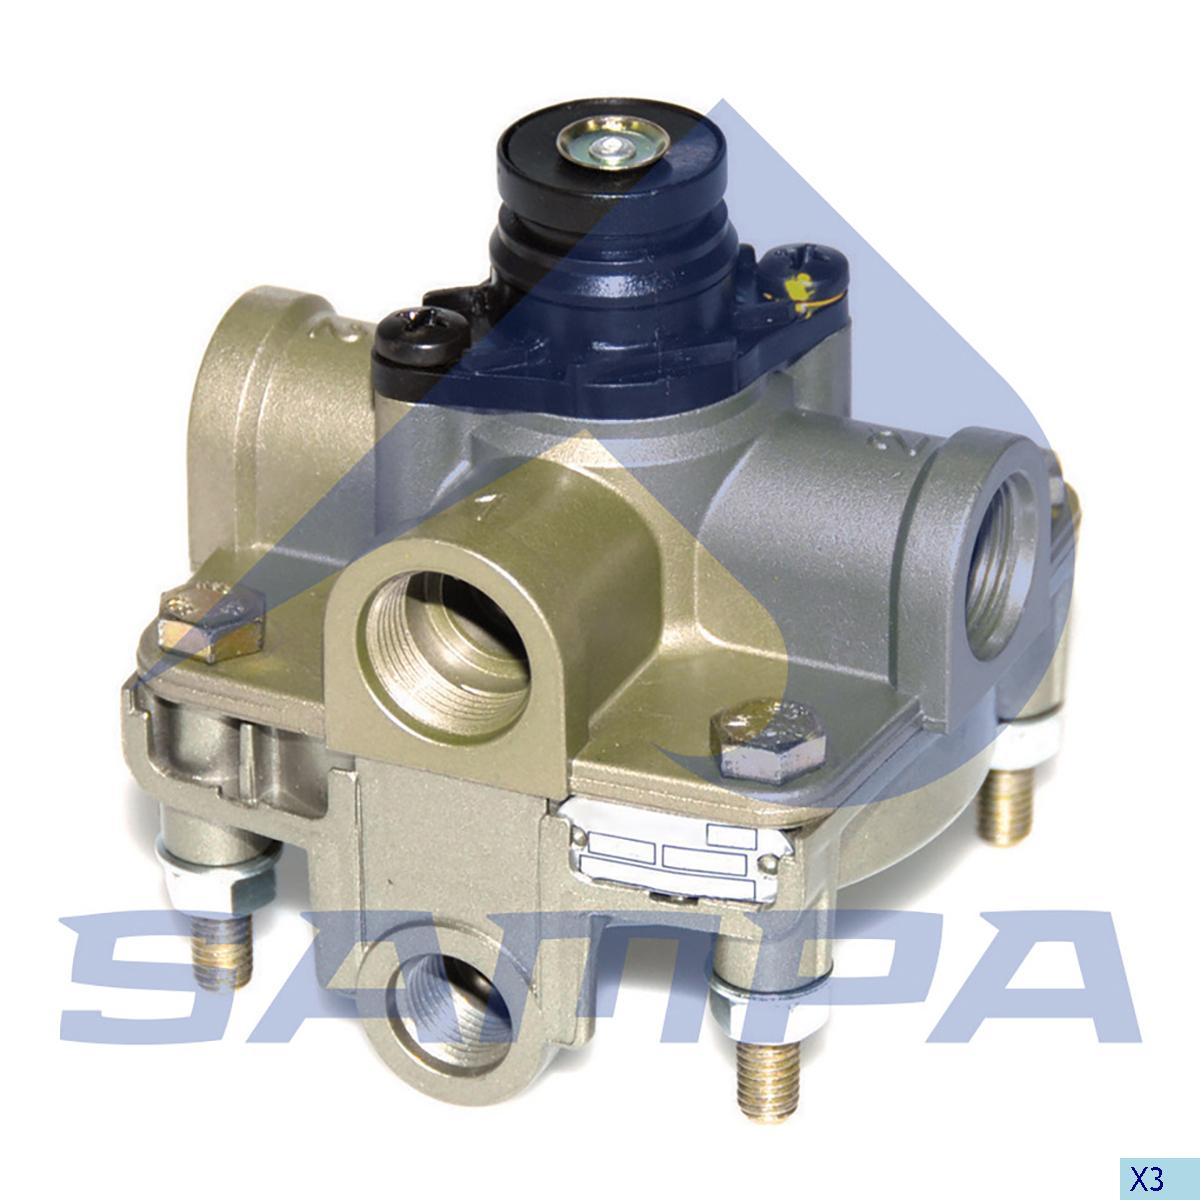 Relay Valve, Daf, Compressed Air System